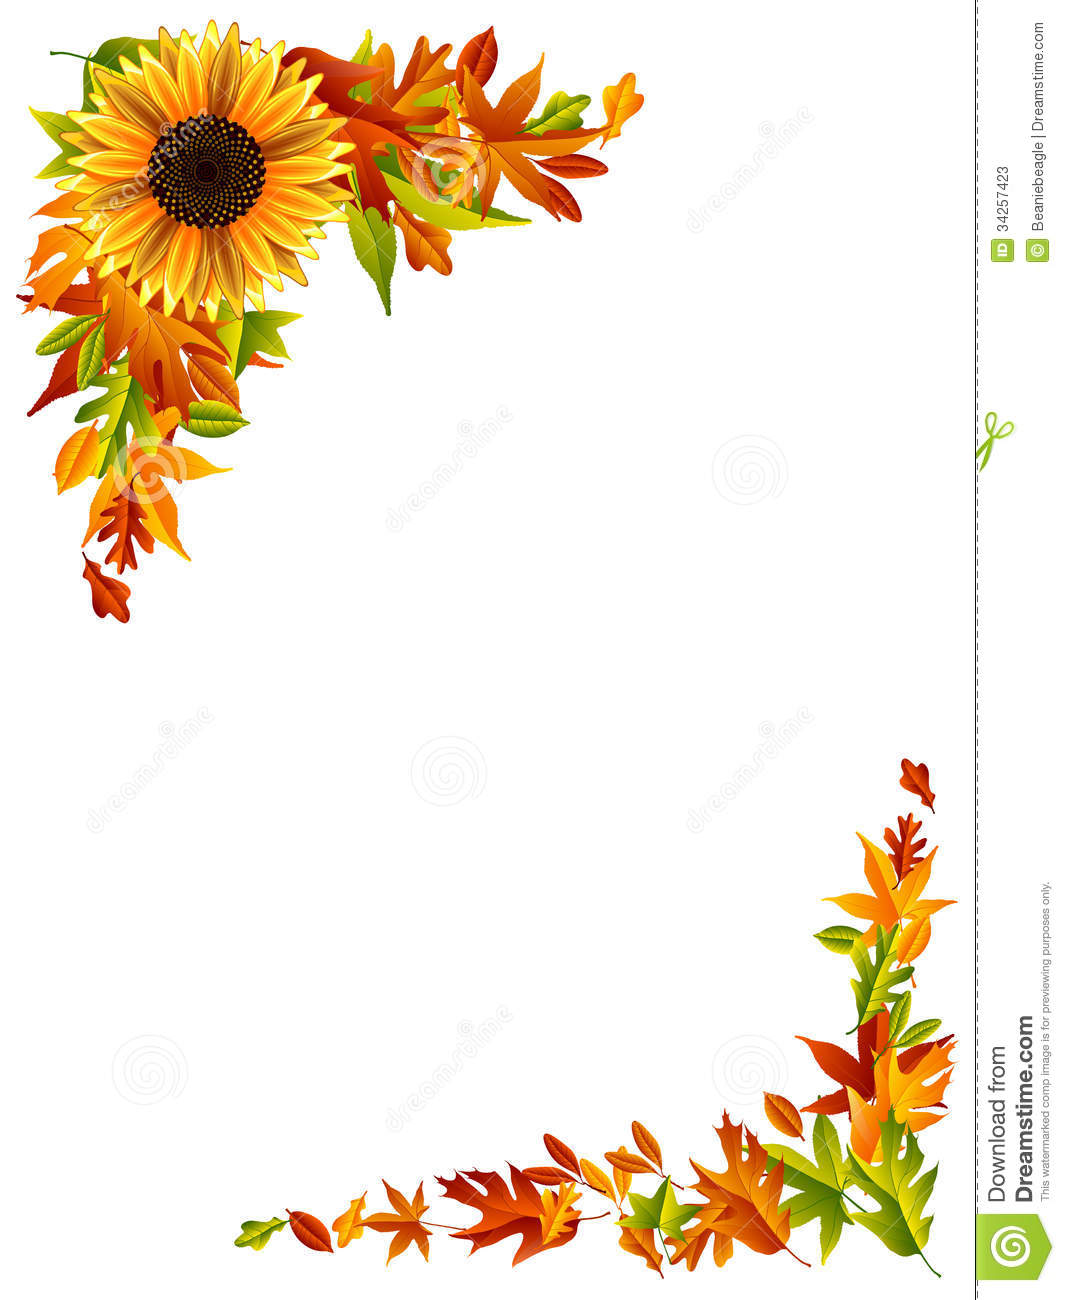 Autumn Clip Art. Resolution 1065x1300 . Resolution 1065x1300 . Free Thanksgiving Borders And Frames ...